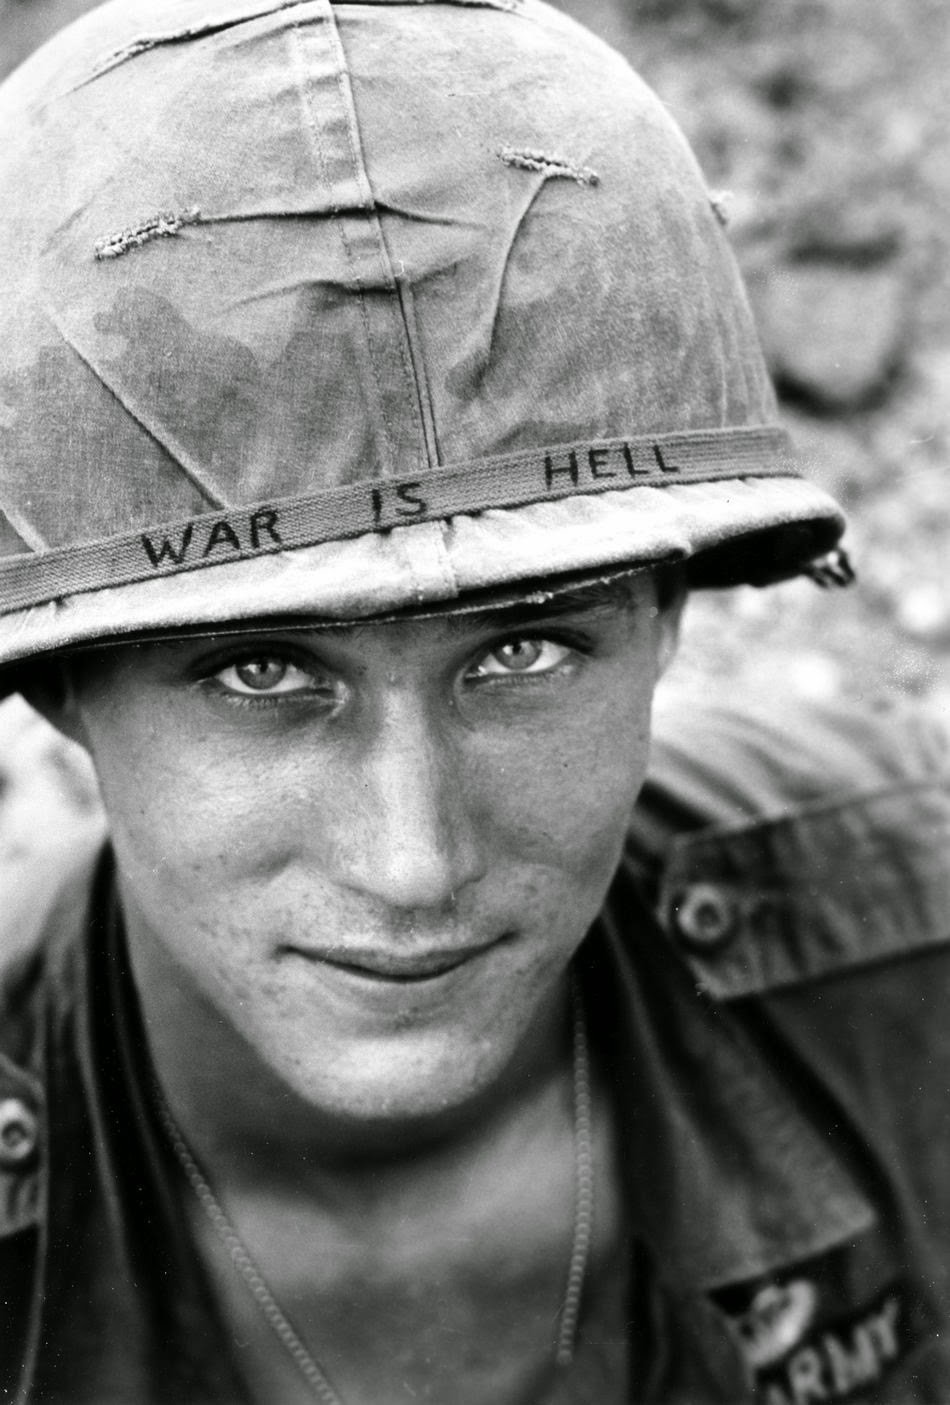 An American Soldier Wears A Hand Lettered War Is Hell Slogan On His Helmet Vietnam 1965 Rare Historical Photos